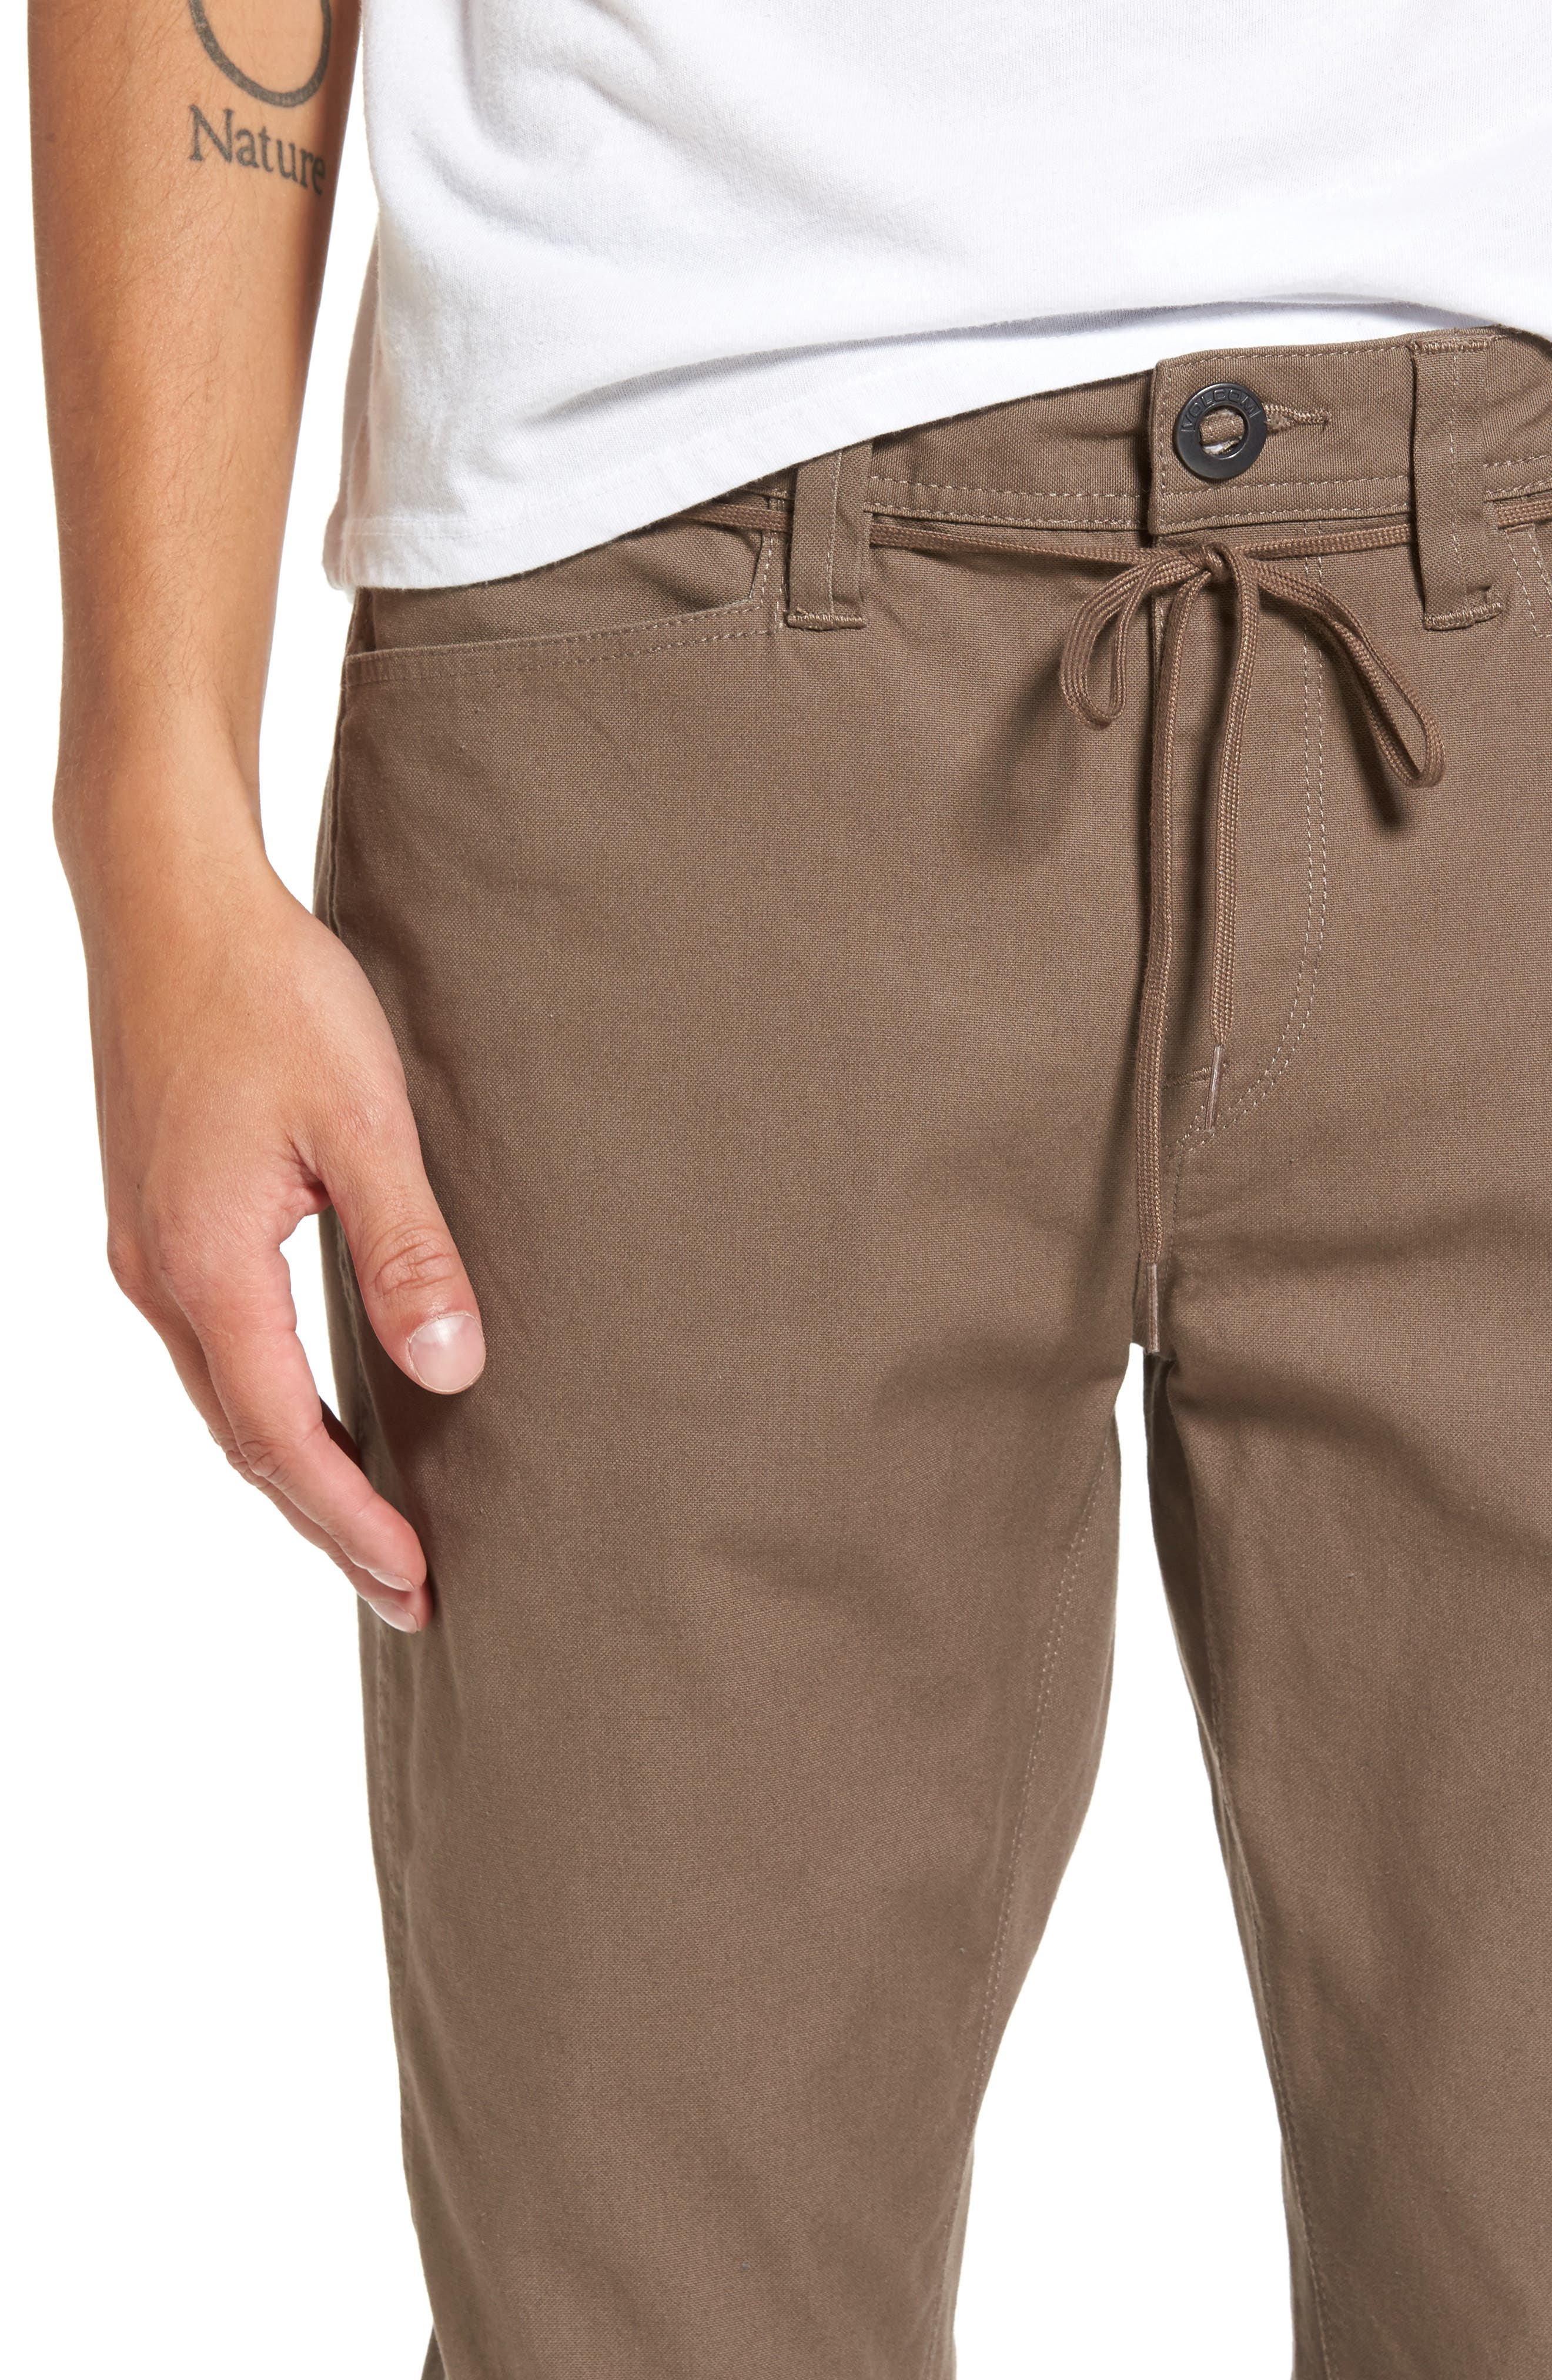 'VSM Gritter' Tapered Chinos,                             Alternate thumbnail 4, color,                             250